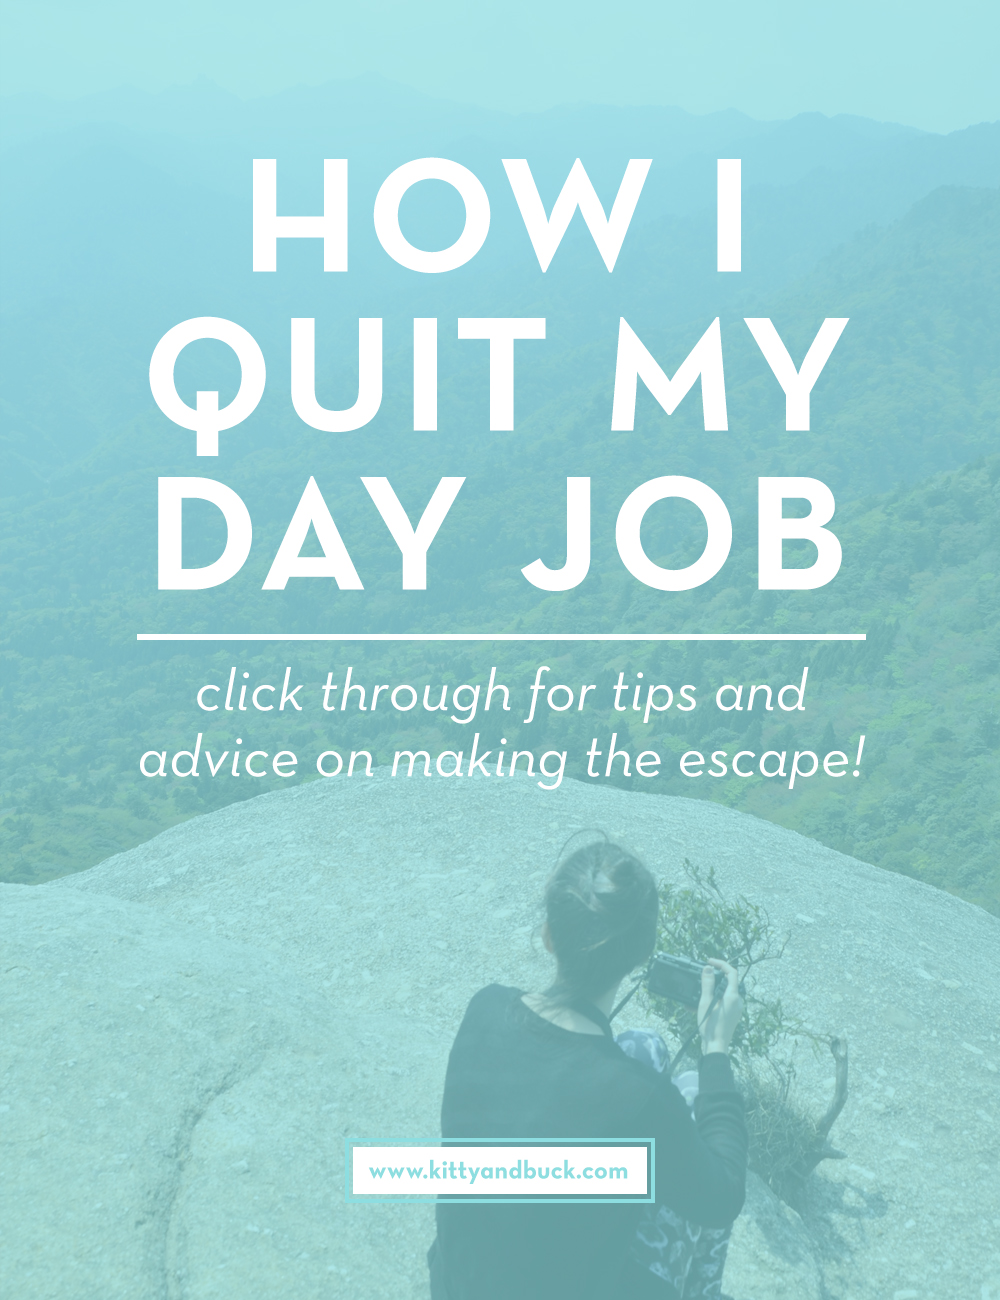 How I Quit My Day Job: The Great Escape | Click through to read the post about taking the leap from 9-5 into freelance and entrepreneurism, and the step-by-step plans to make it happen for you! | by Kitty & Buck